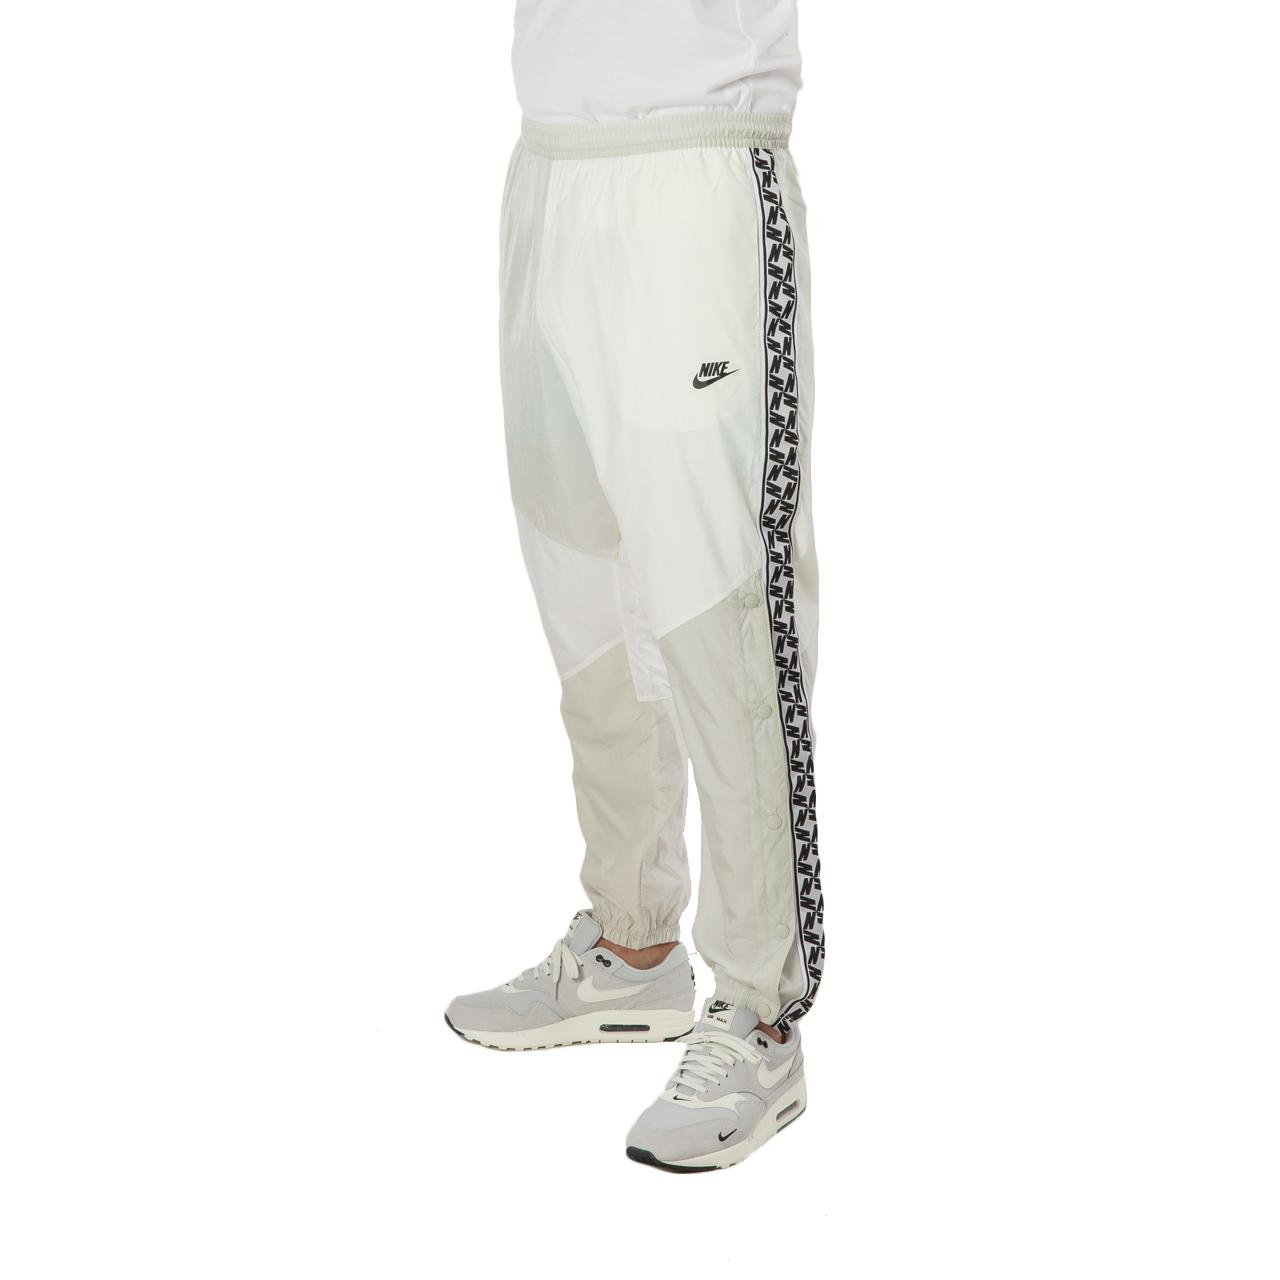 338f99a76e55 ... Nsw Taped Woven Pant for Men - Lyst. View fullscreen